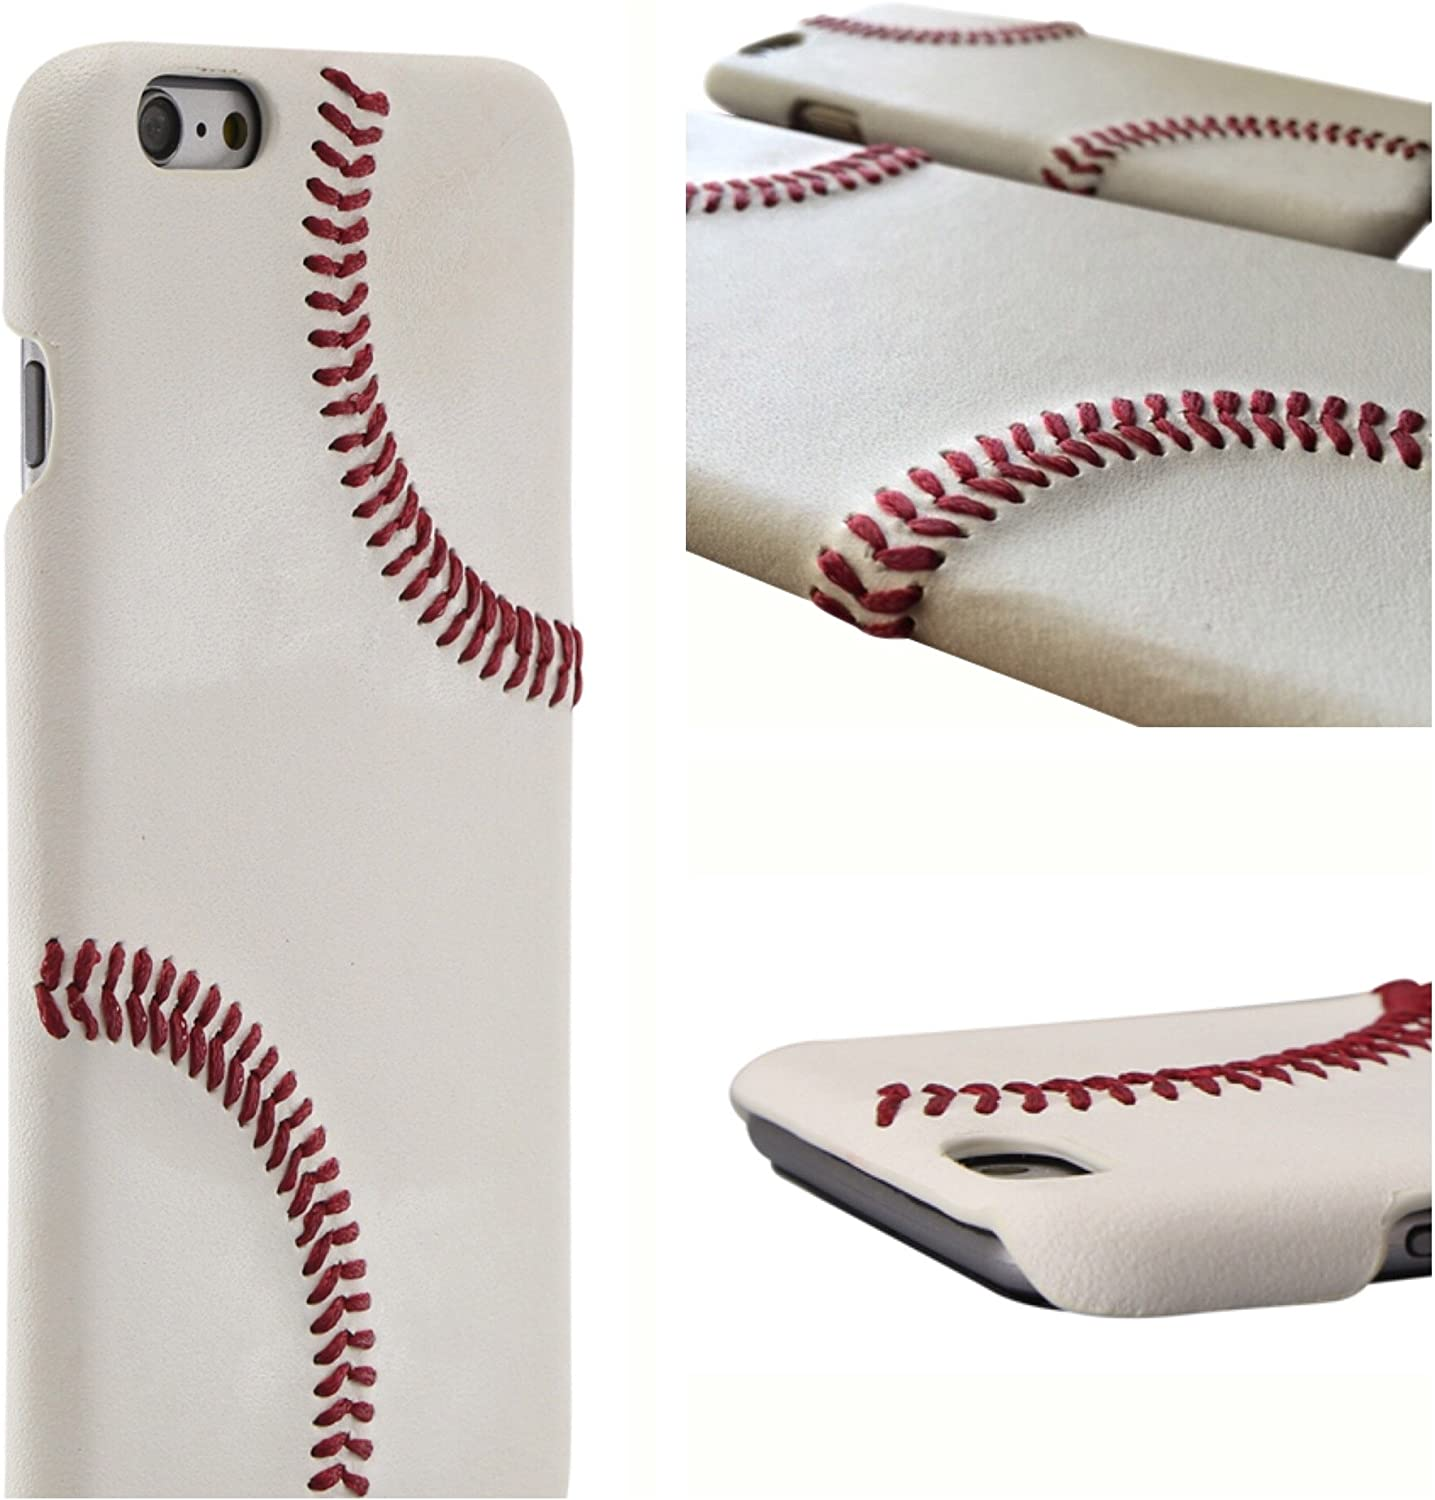 mcmadley Leather Baseball Phone Case for iPhone 6 Plus and 6s Plus. Made with Pro Baseball Leather and Raised Stitch, Ultra Thin, Protective Grip, Light Weight, Perfect Apple iPhone Fit